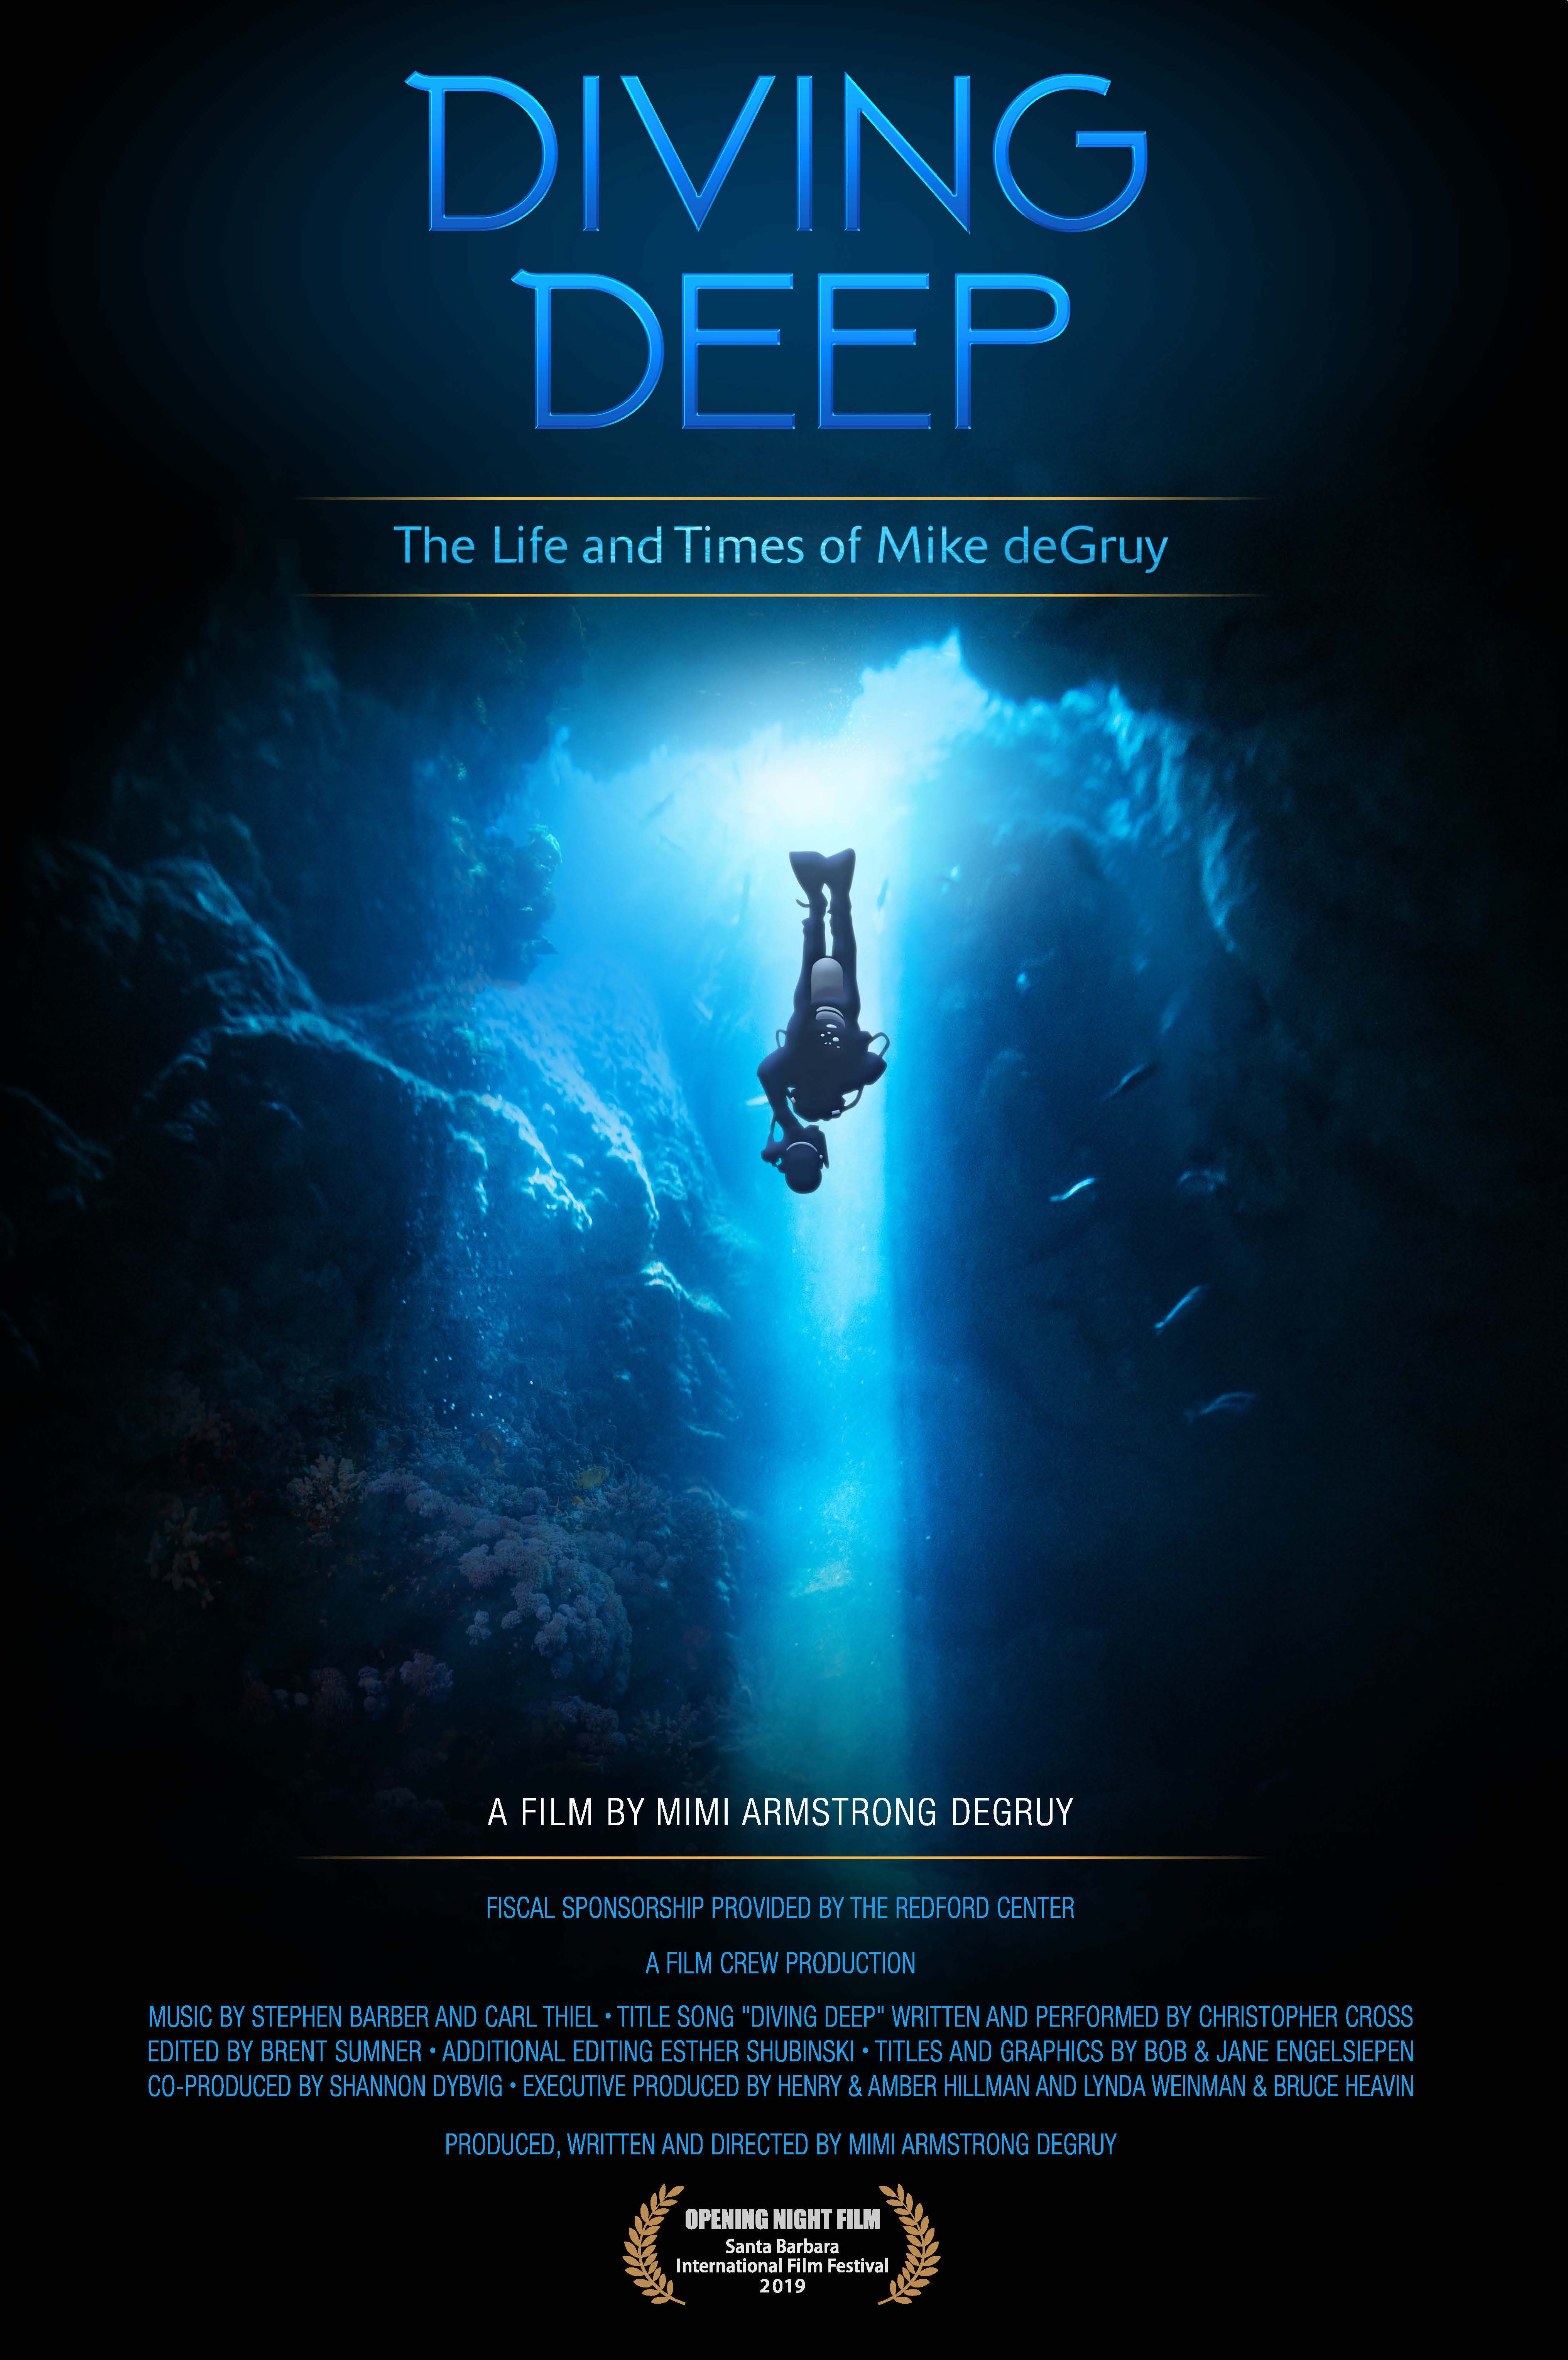 Diving Deep: The Life and Times of Mike deGruy (2019) - IMDb